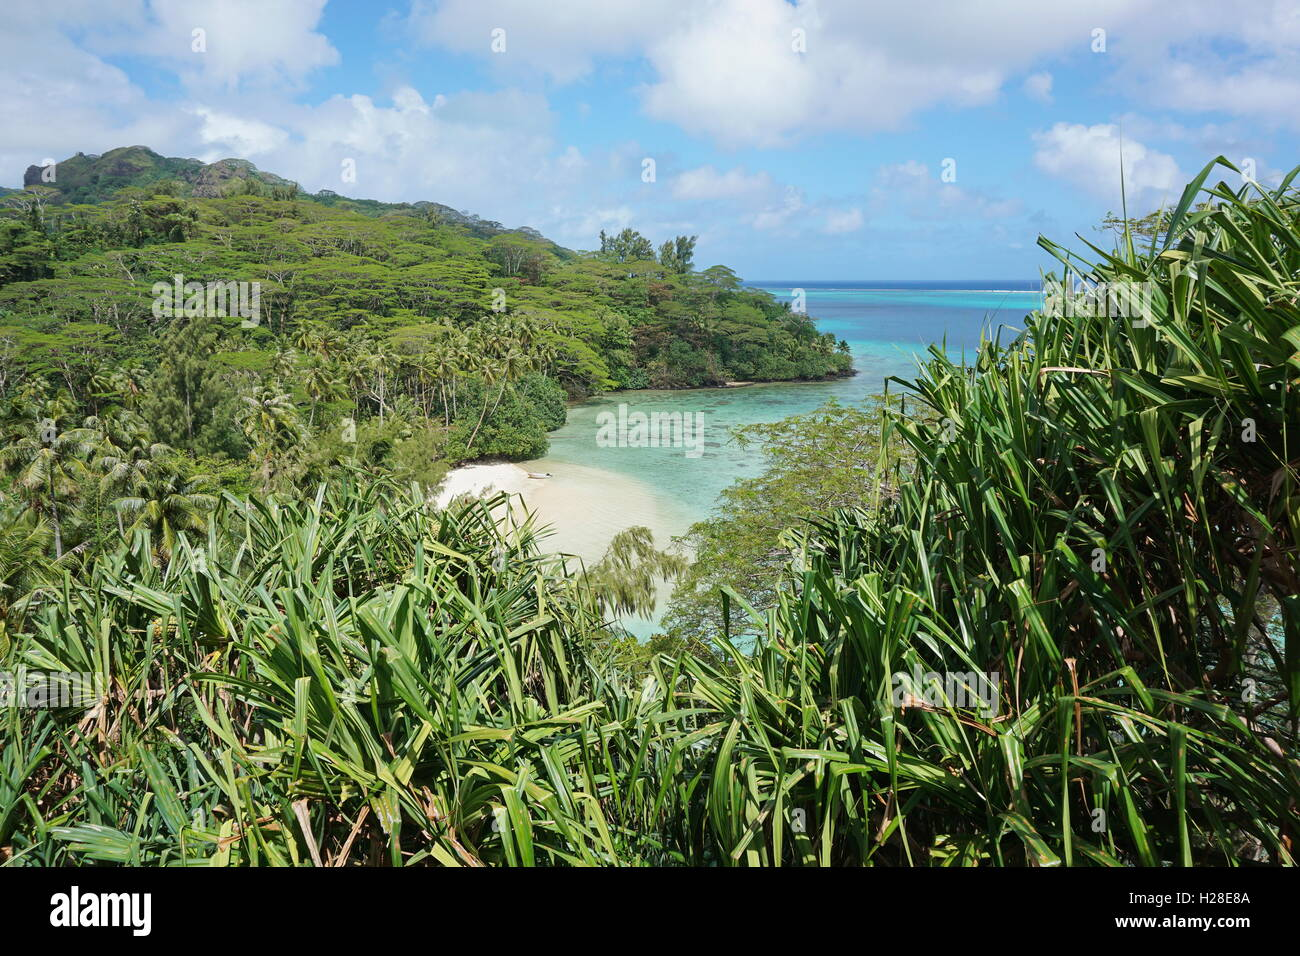 A secluded sandy beach with lush tropical vegetation, Huahine island, Pacific ocean, French Polynesia - Stock Image